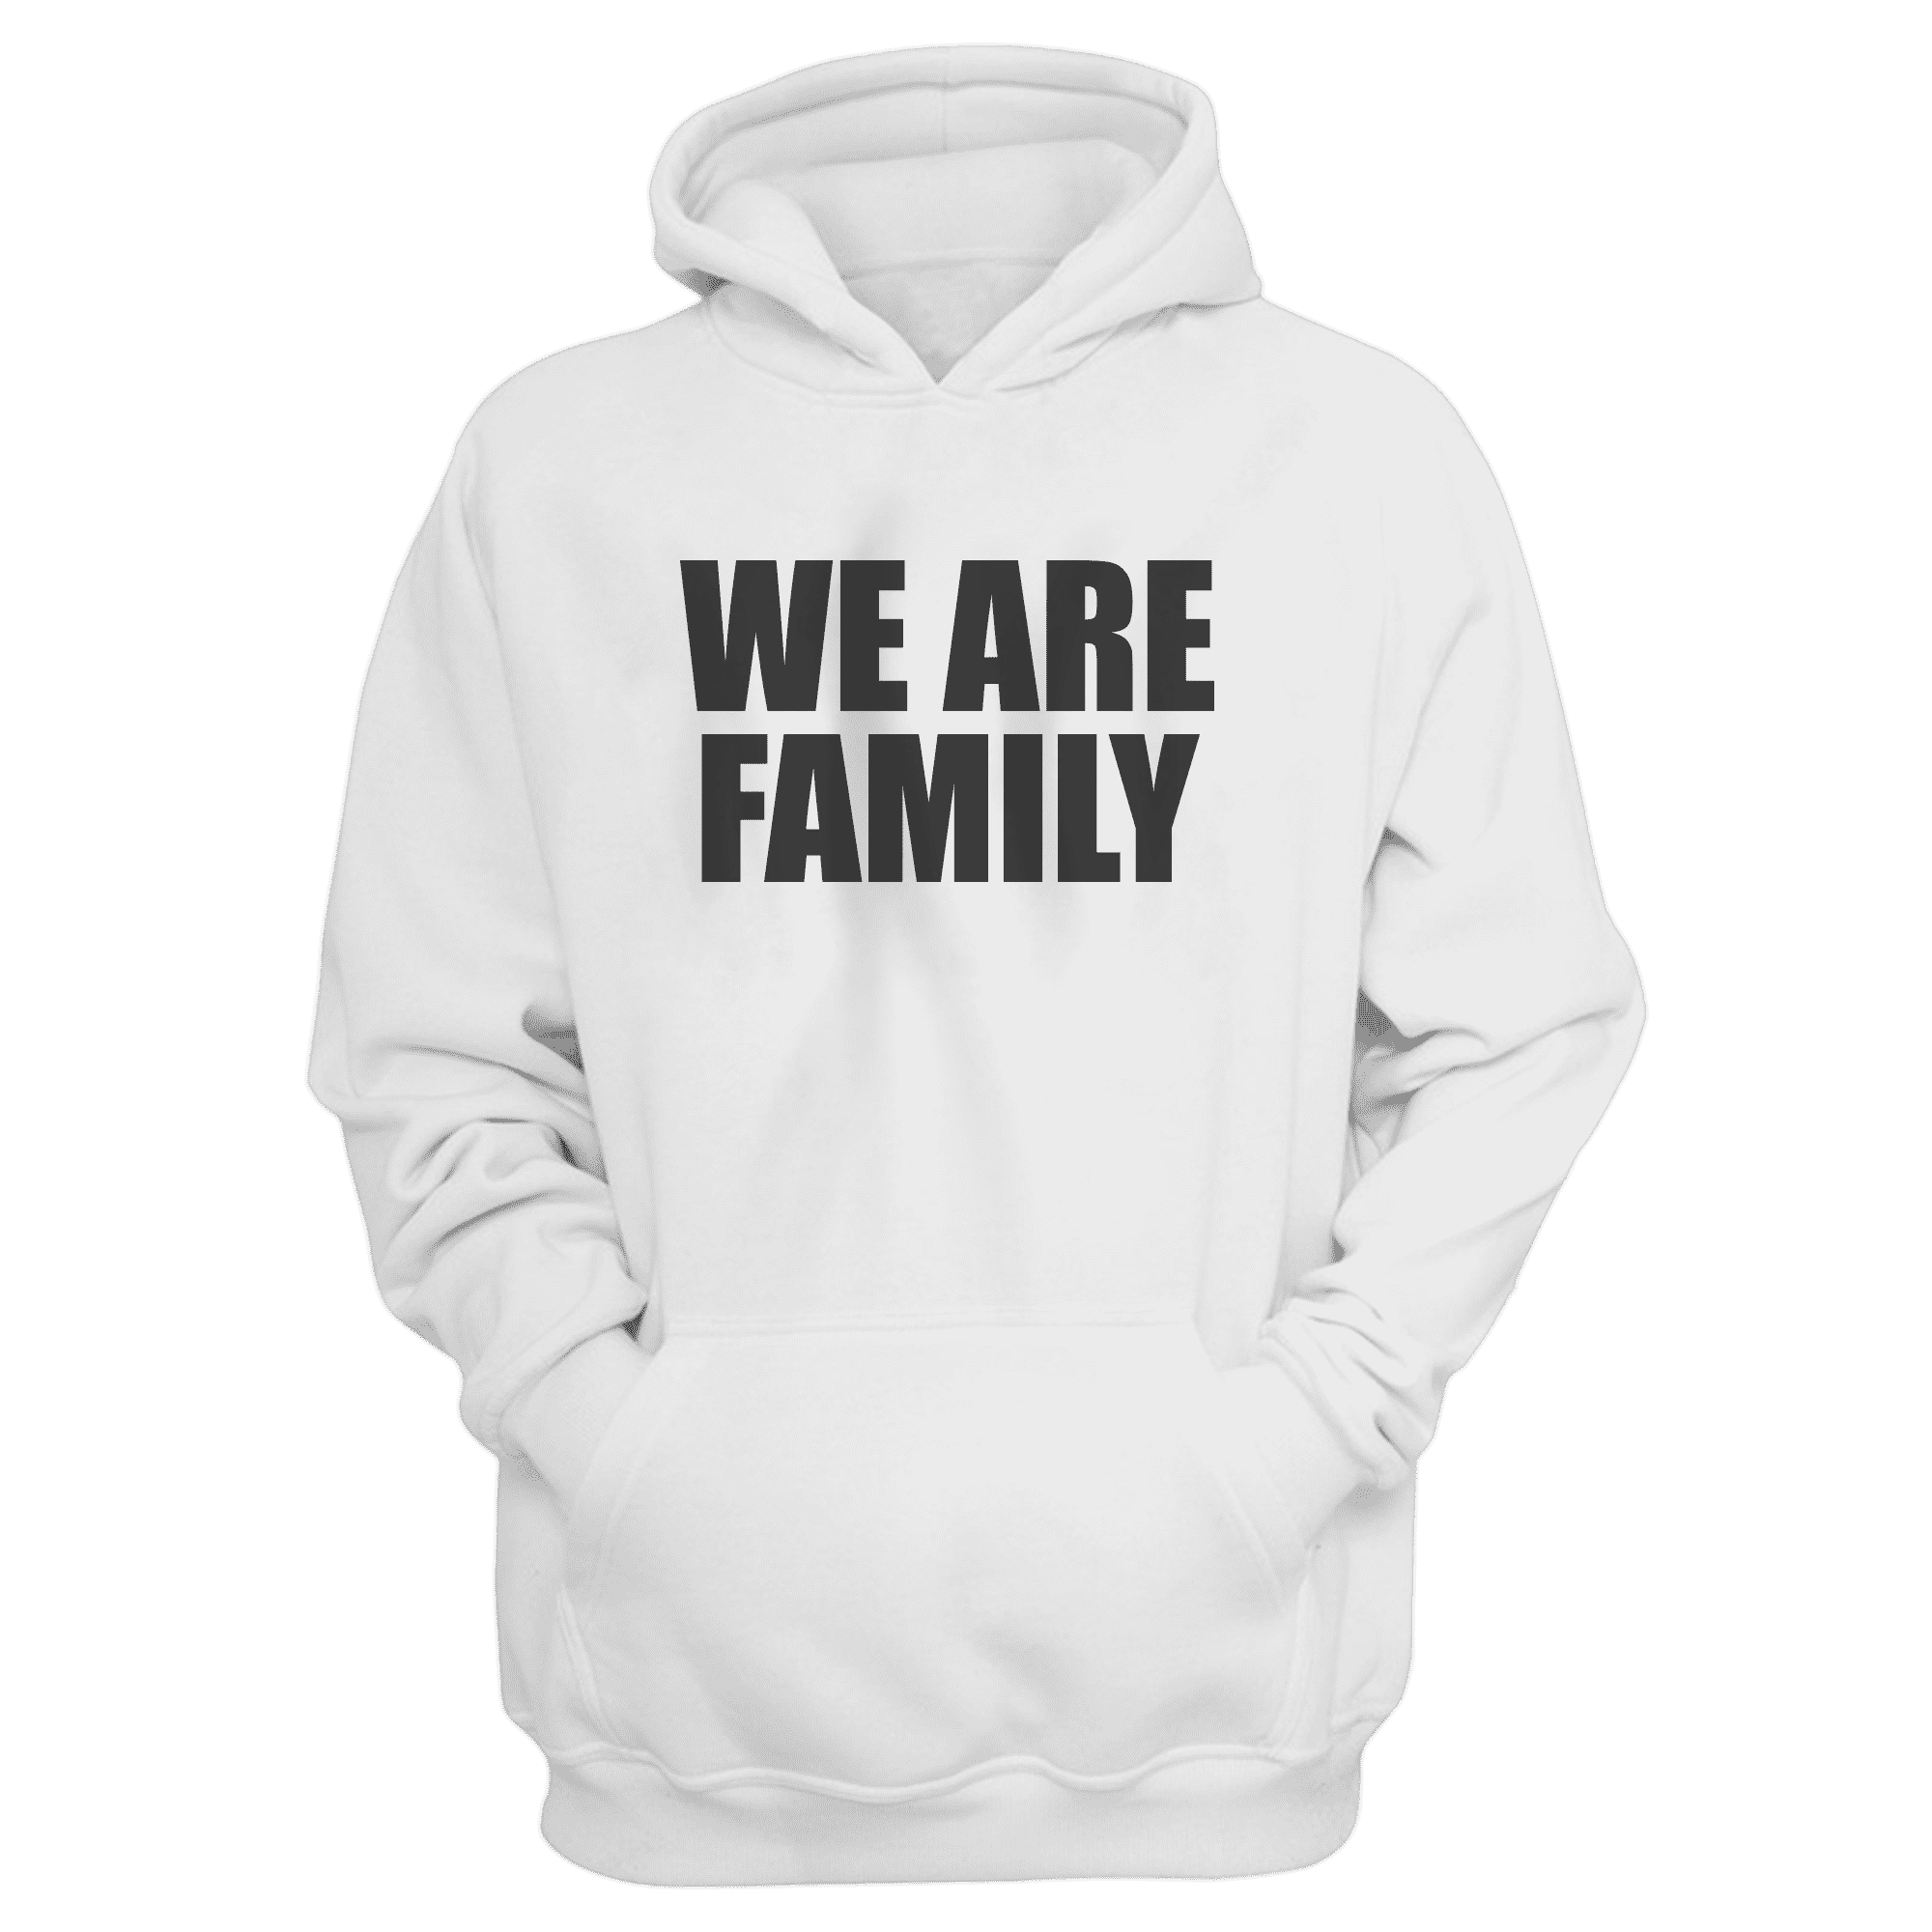 We Are Family Hoodie (HD-wht-KLS-WHT-NP-WSH-BSKTBLL-wefamily-Syh-542)